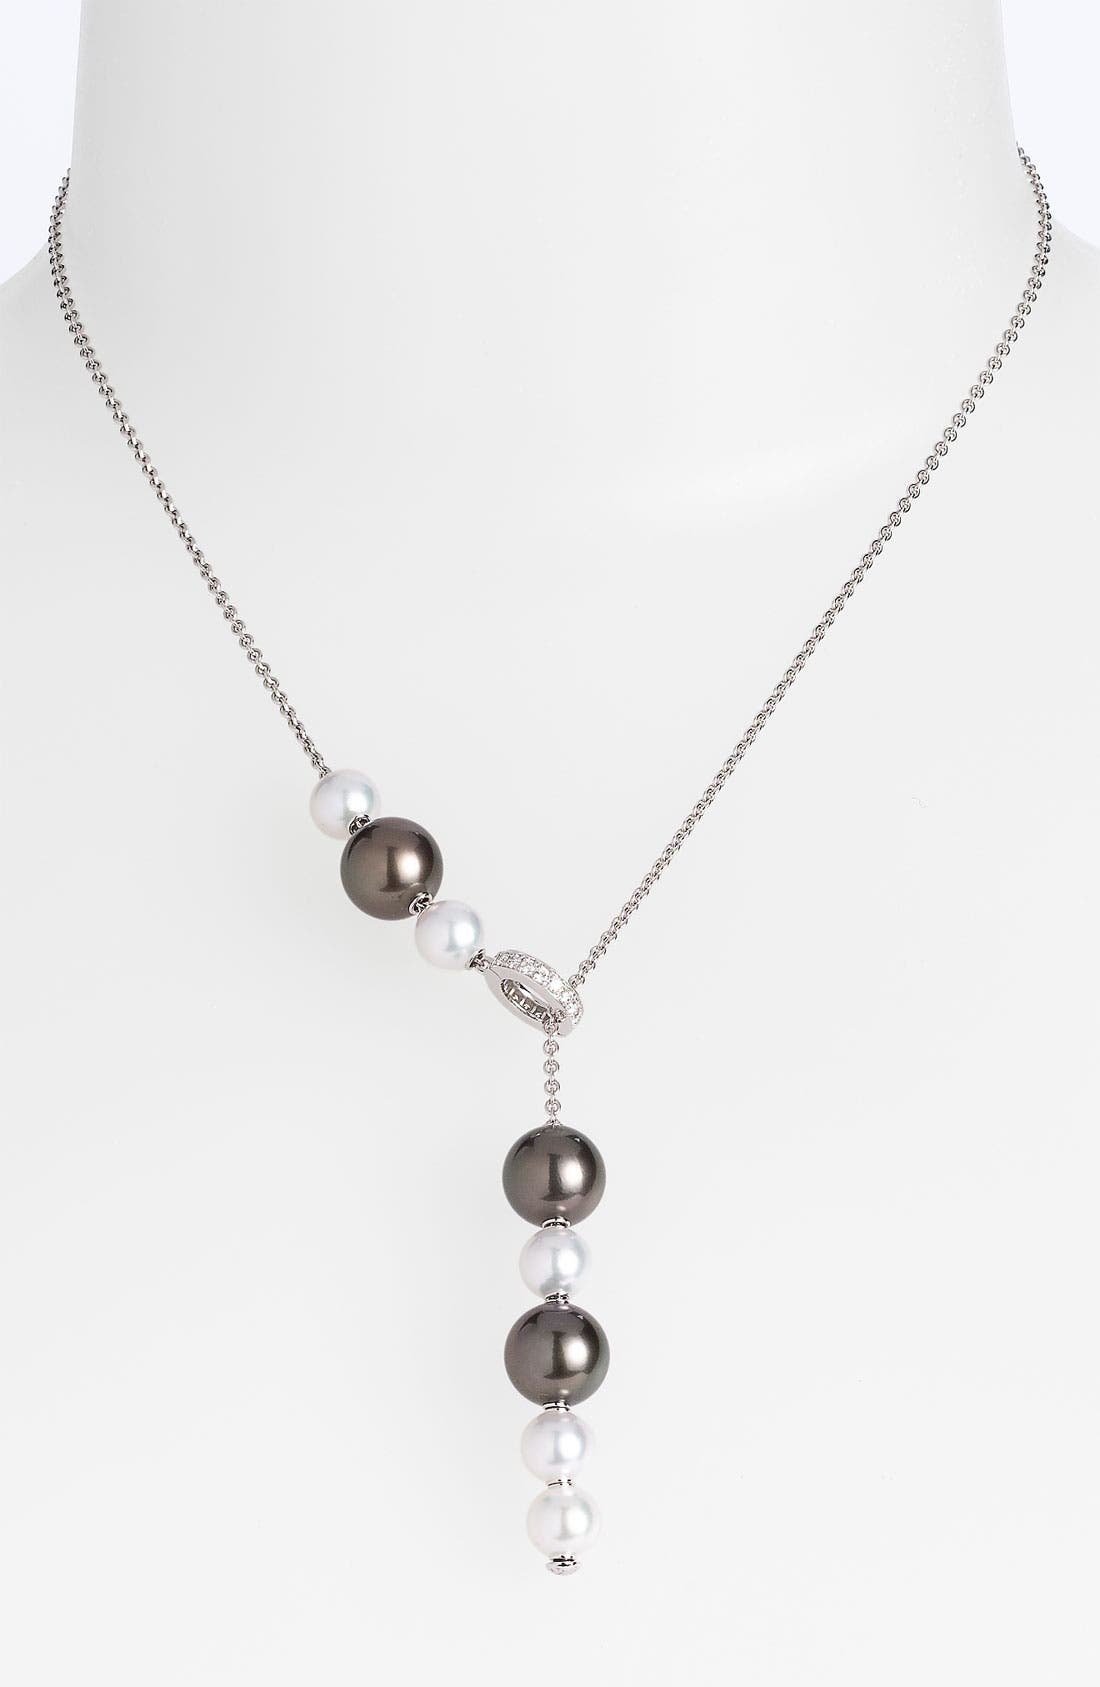 Main Image - Mikimoto 'Pearls in Motion' Black South Sea & Akoya Cultured Pearl Necklace